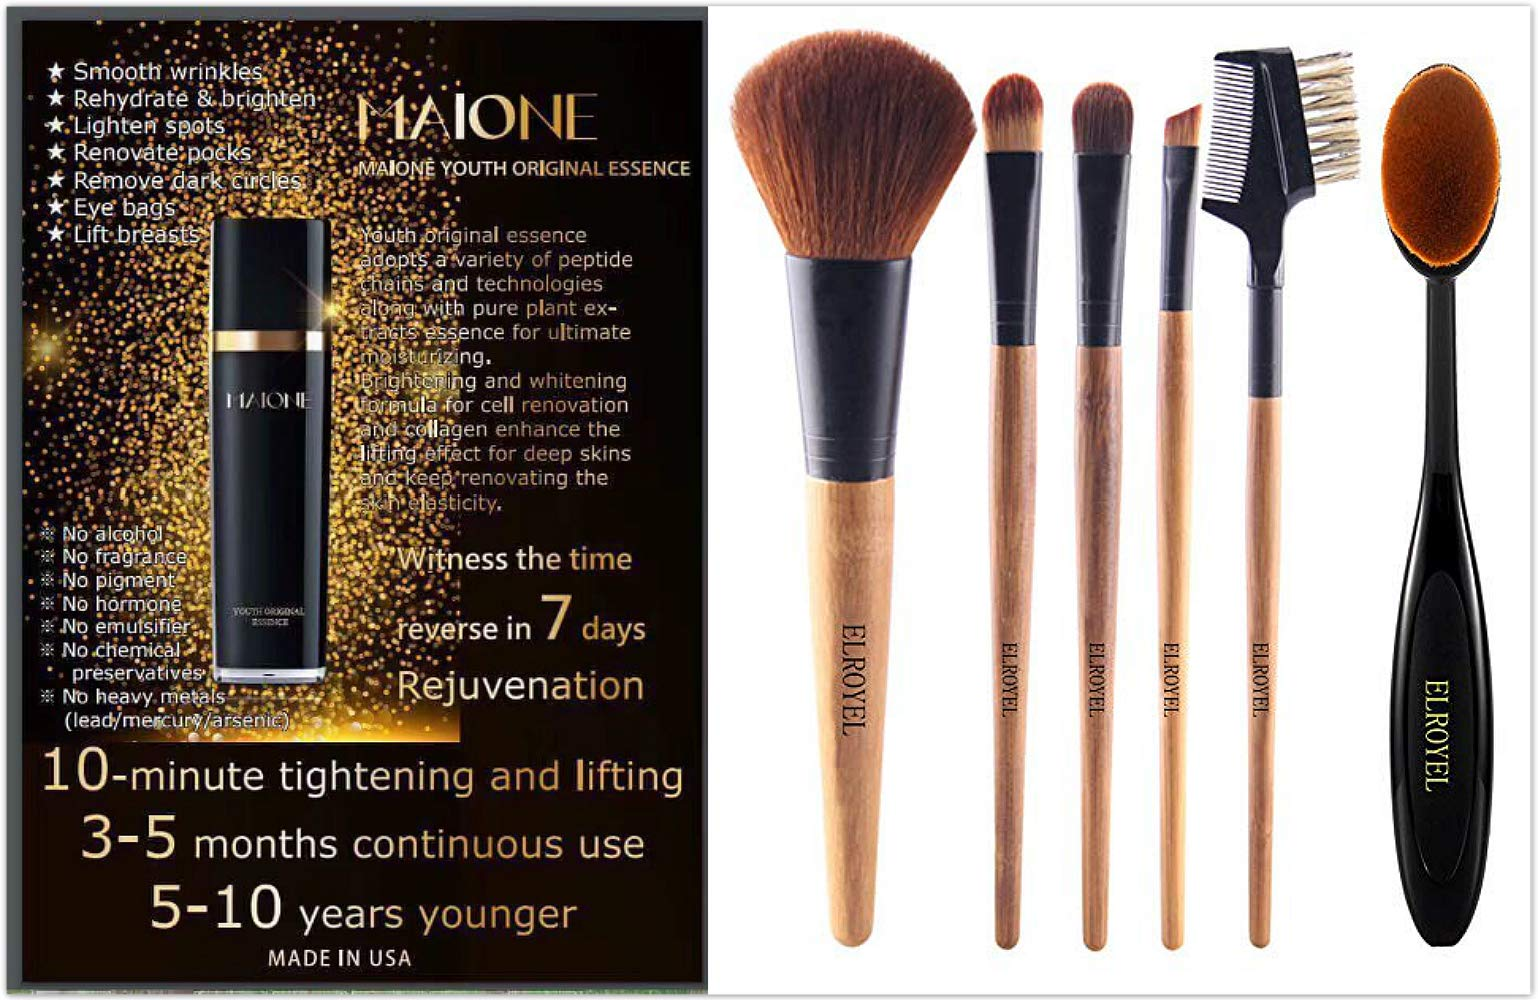 Maione Original Youth Essence 100 ml Recover Skin's Elasticity/Smooth Fine Lines BONUS: get one FREE ELROYEL Makeup Brush Set 6 Piece Organic Bamboo Makeup Brush Premium Quality (A $12 Value) by Greenpoint Resource